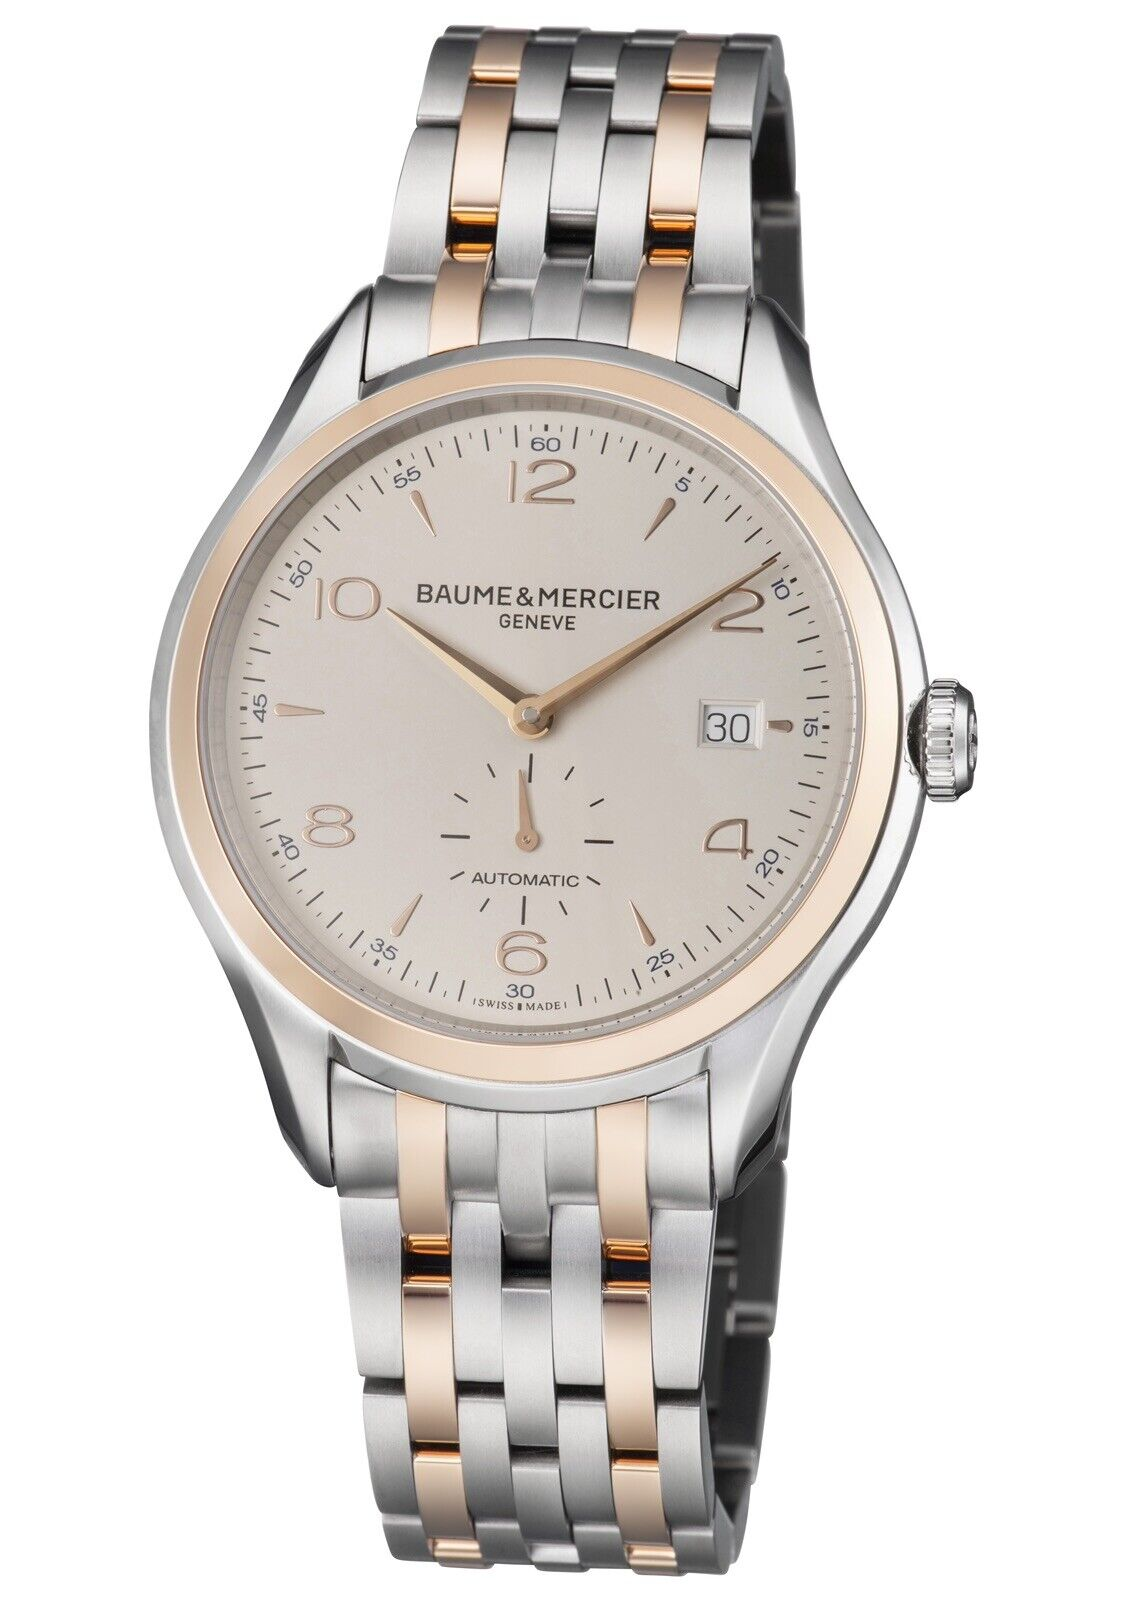 Baume & Mercier Clifton 18K Rose Gold & SS Automatic Men's Watch M0A10140 New - watch picture 1